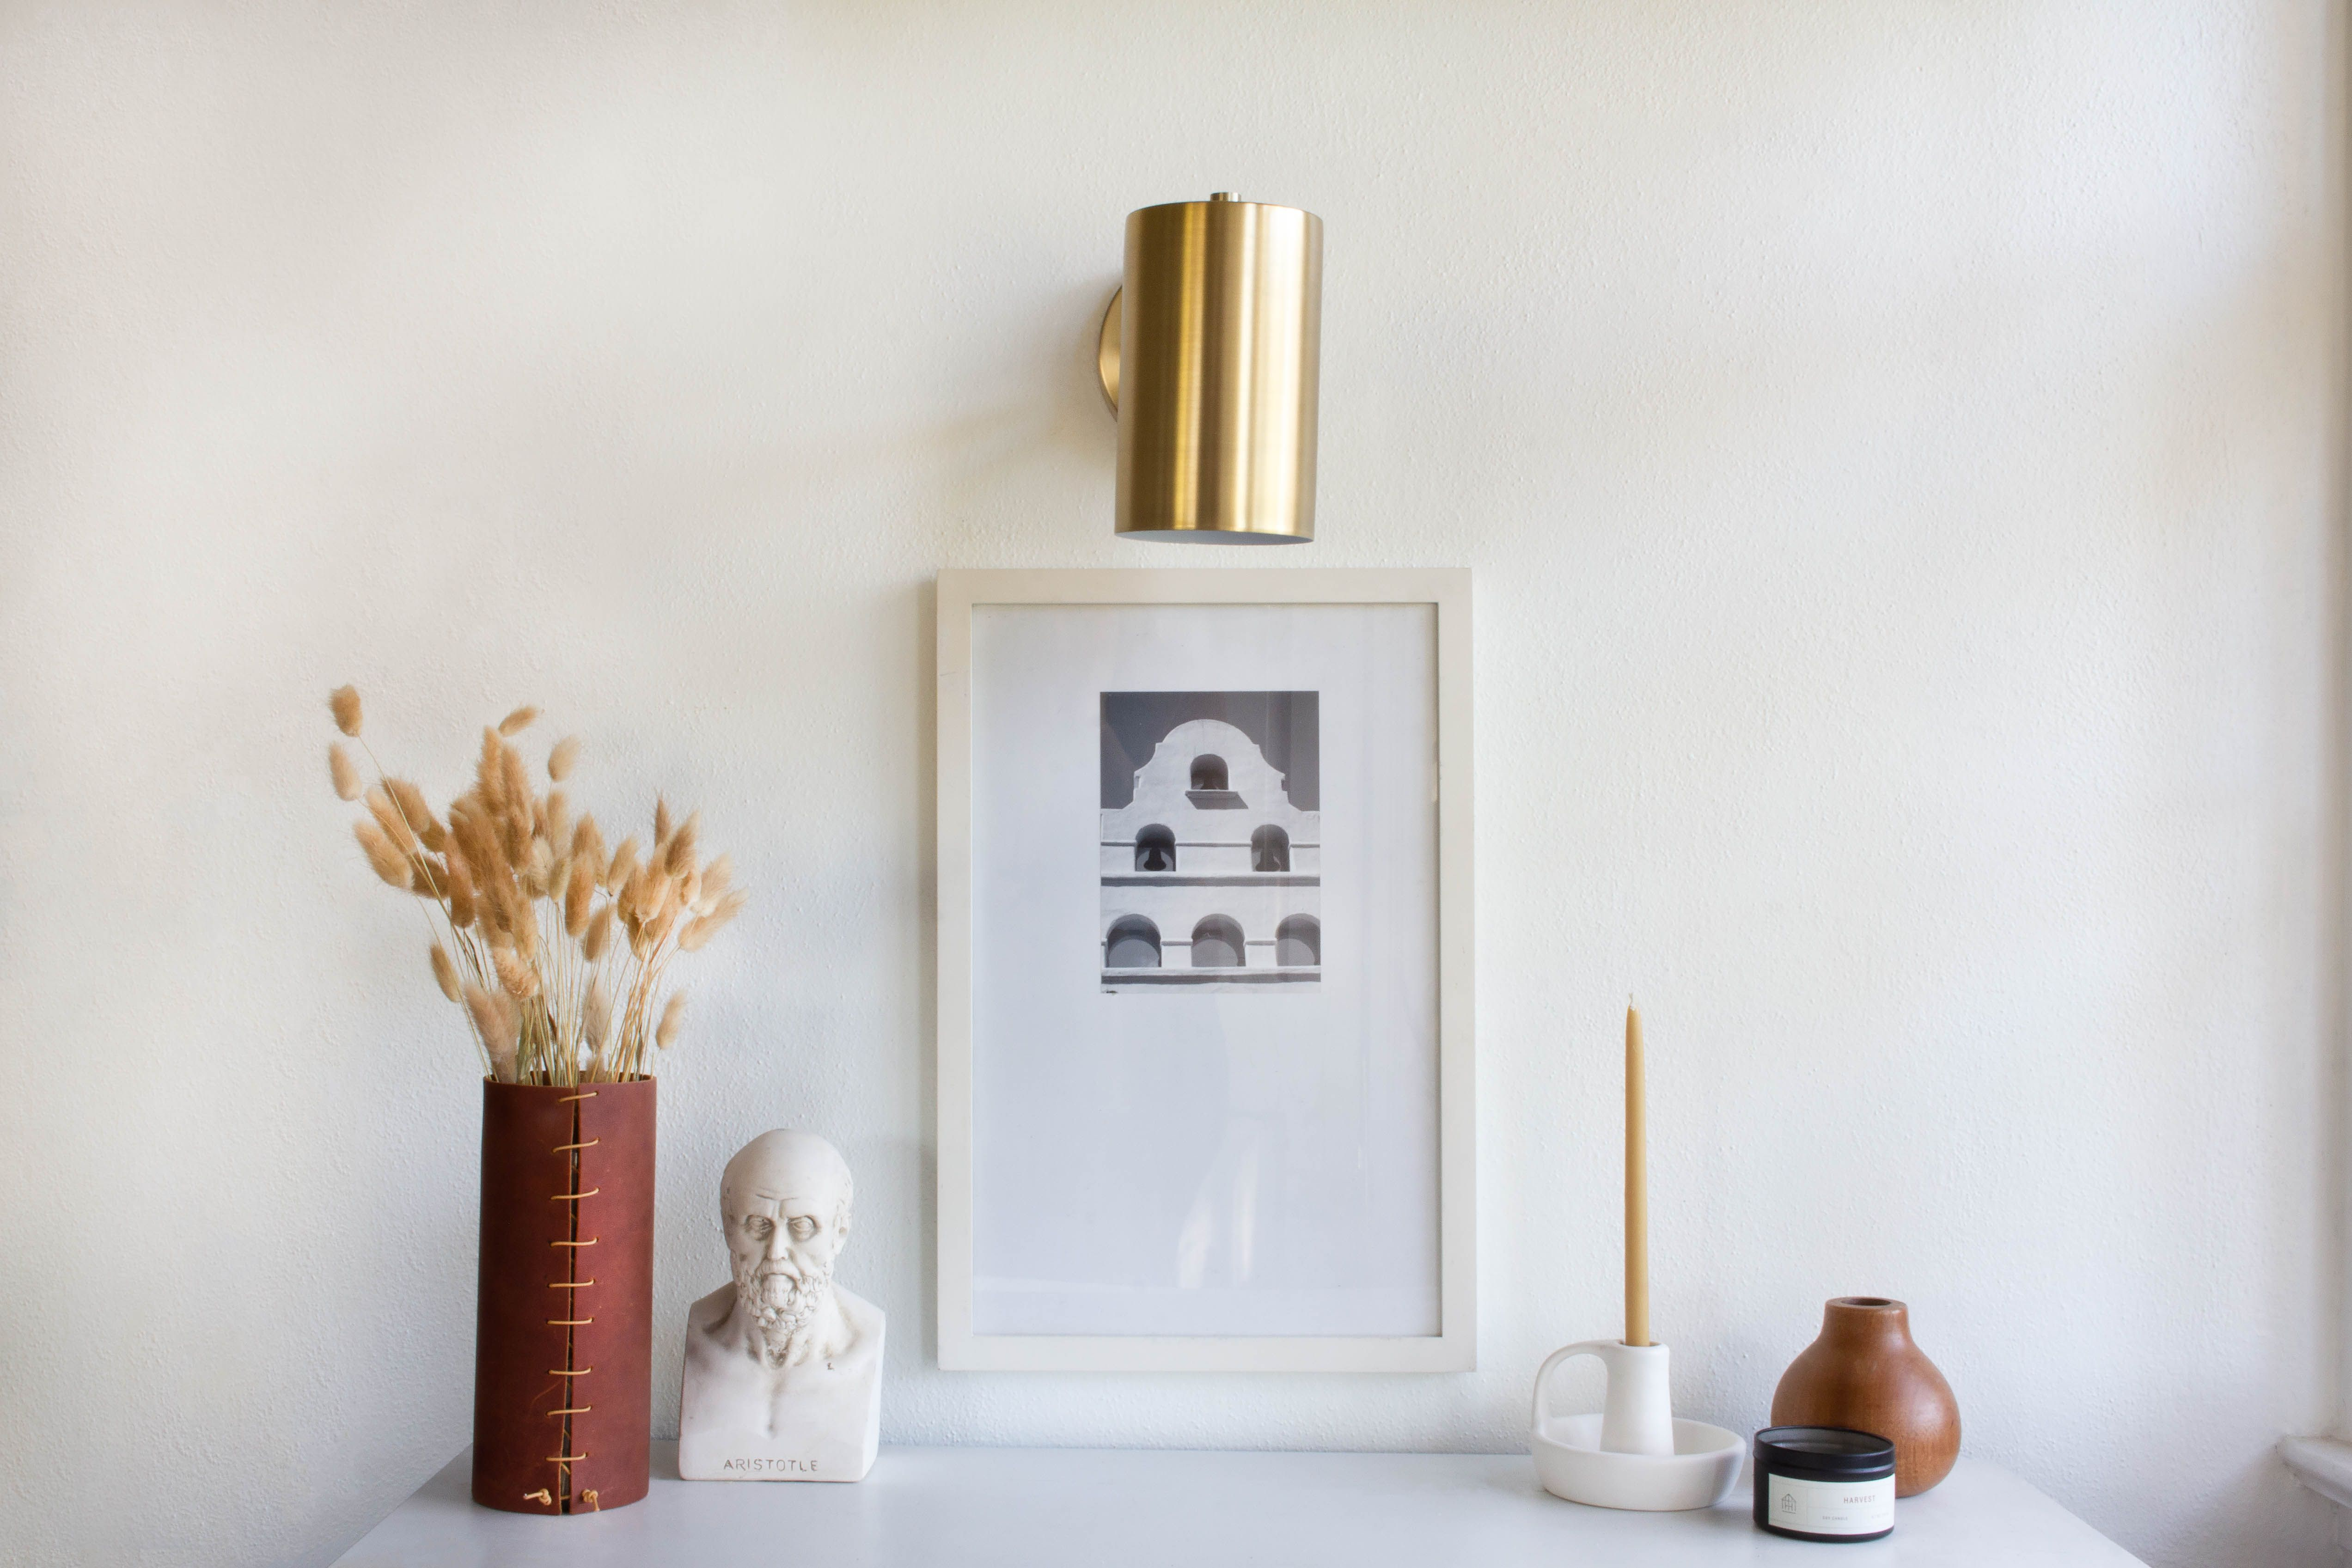 Genius Wall Sconce Hack, No Electricity Required | Wall ... on Sconces No Electric Power id=58345